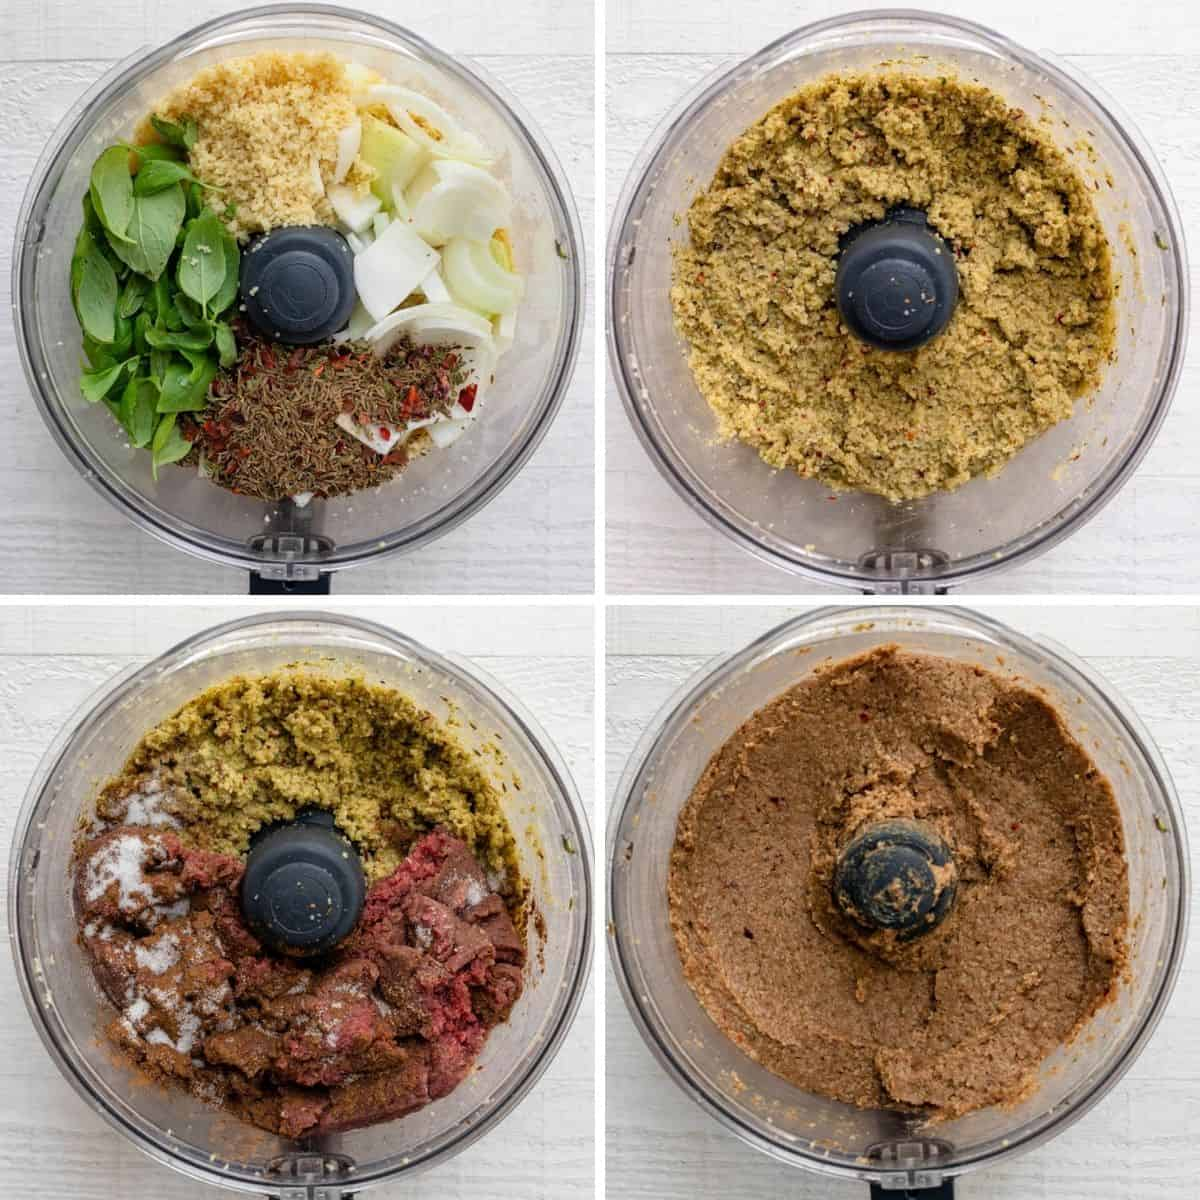 4 photo collage showing the kibbeh ingredients in a food processor, first the bulgur, onions and spices, then the mixture, next with beef and then the final outcome